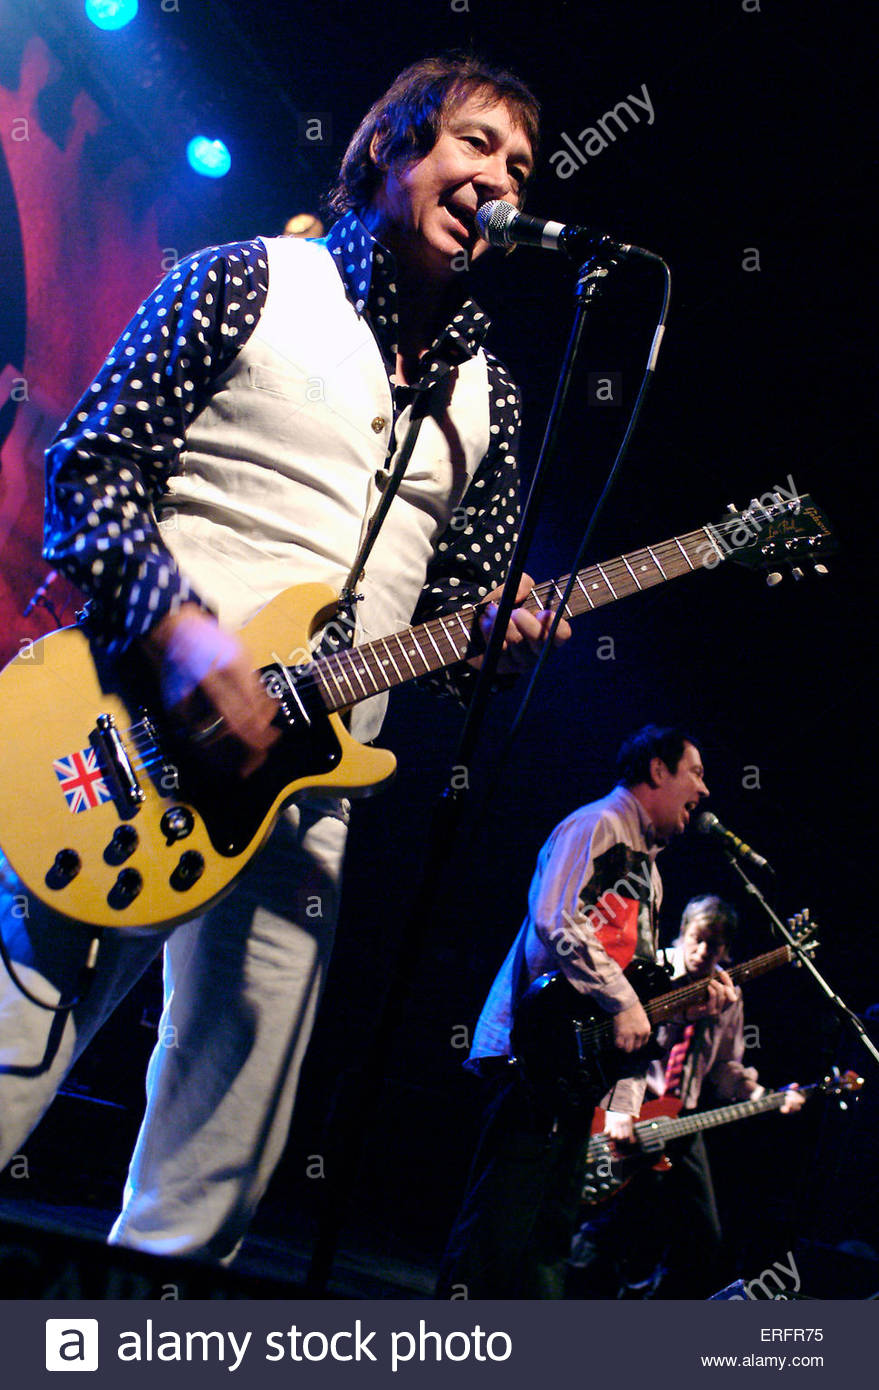 The Buzzcocks - Steve Diggle, Pete Shelly, & Steve Garvey of The Buzzcocks performing in Bristol, March 2006. - Stock Image